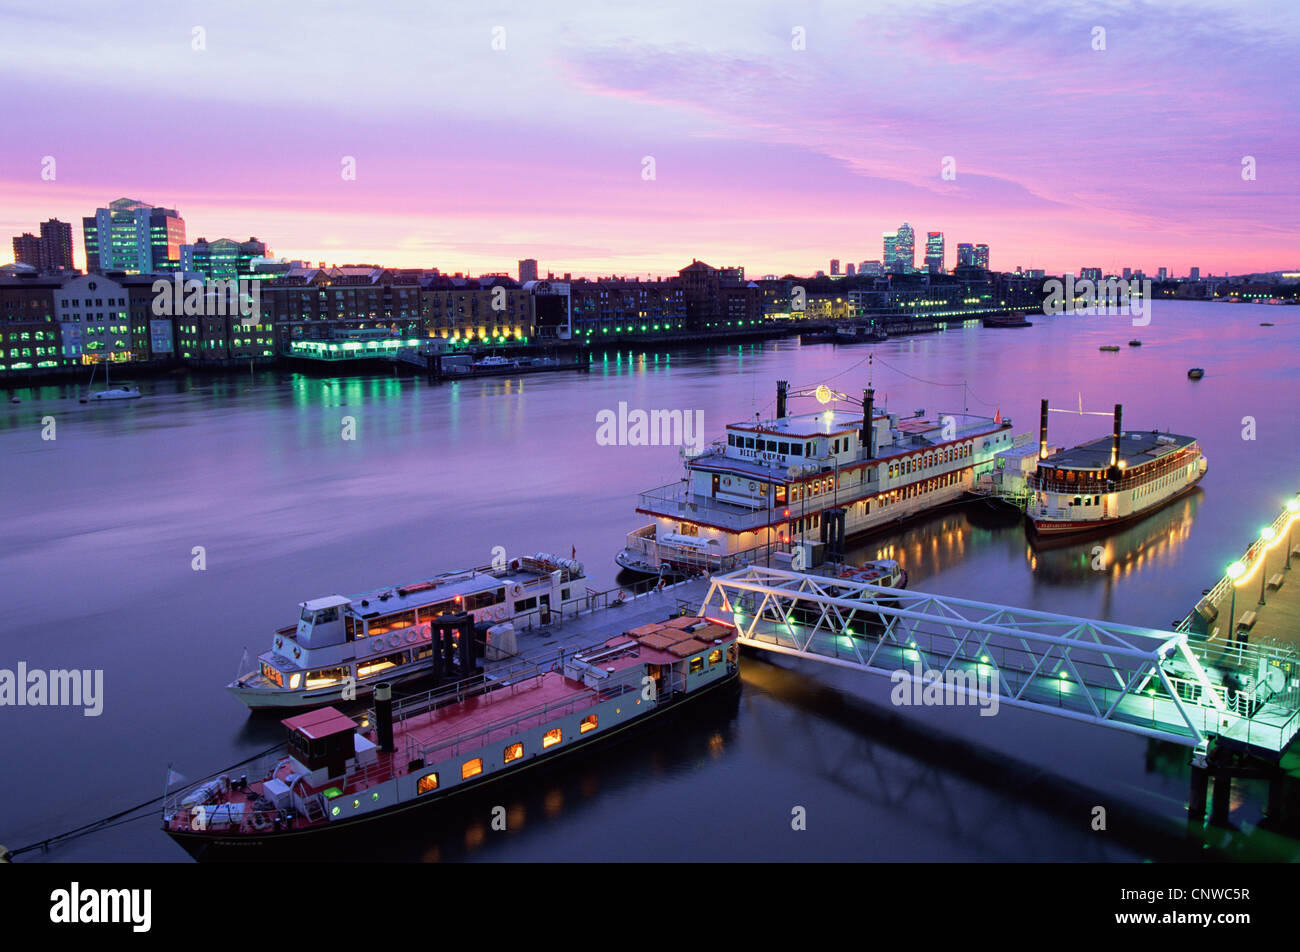 England, London, Night View of Boats on the Thames River with Docklands and Canary Wharf Skyline in Background Stock Photo